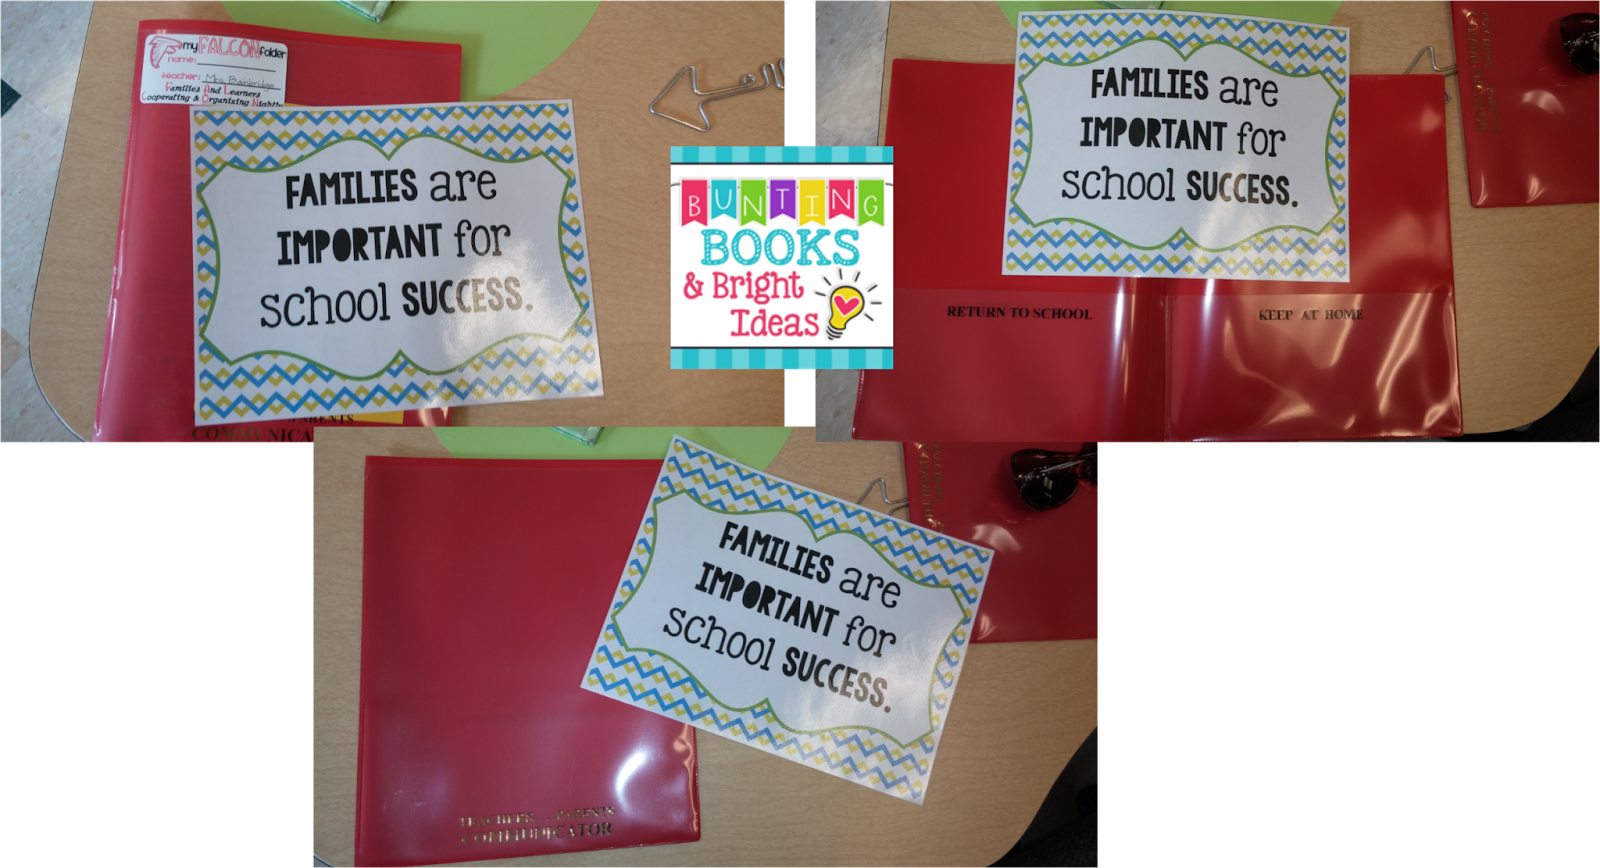 Bunting books and bright. Folder clipart graded work